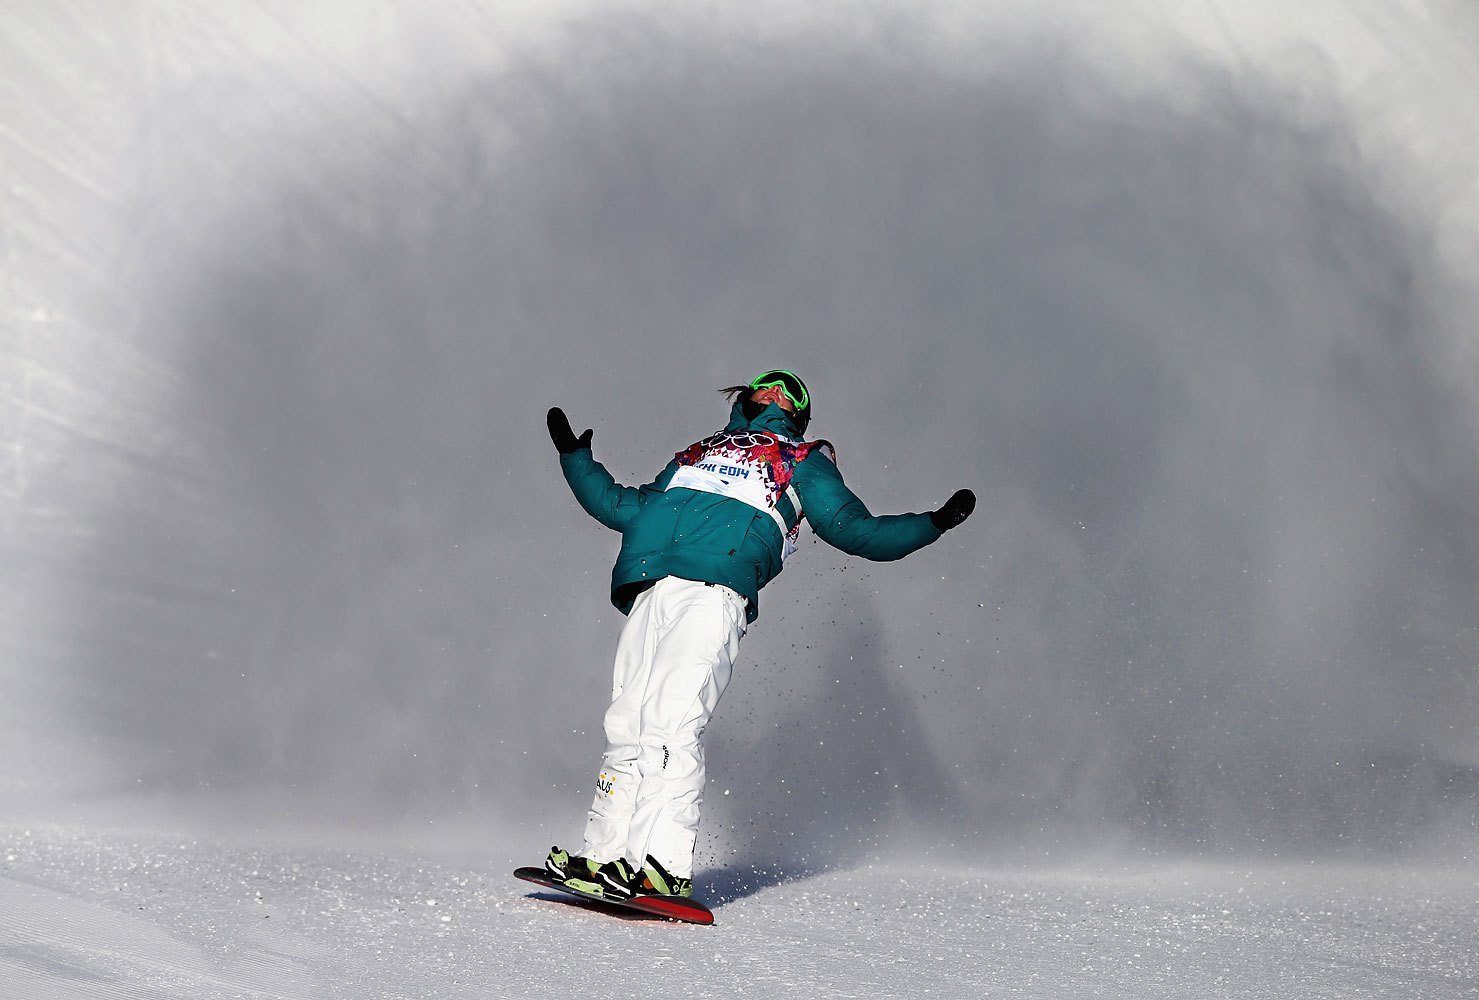 Scotty James of Australia reacts during the Snowboard Men's Slopestyle Semifinals during day 1 of the Sochi 2014 Winter Olympics at Rosa Khutor Extreme Park on Feb. 8, 2014